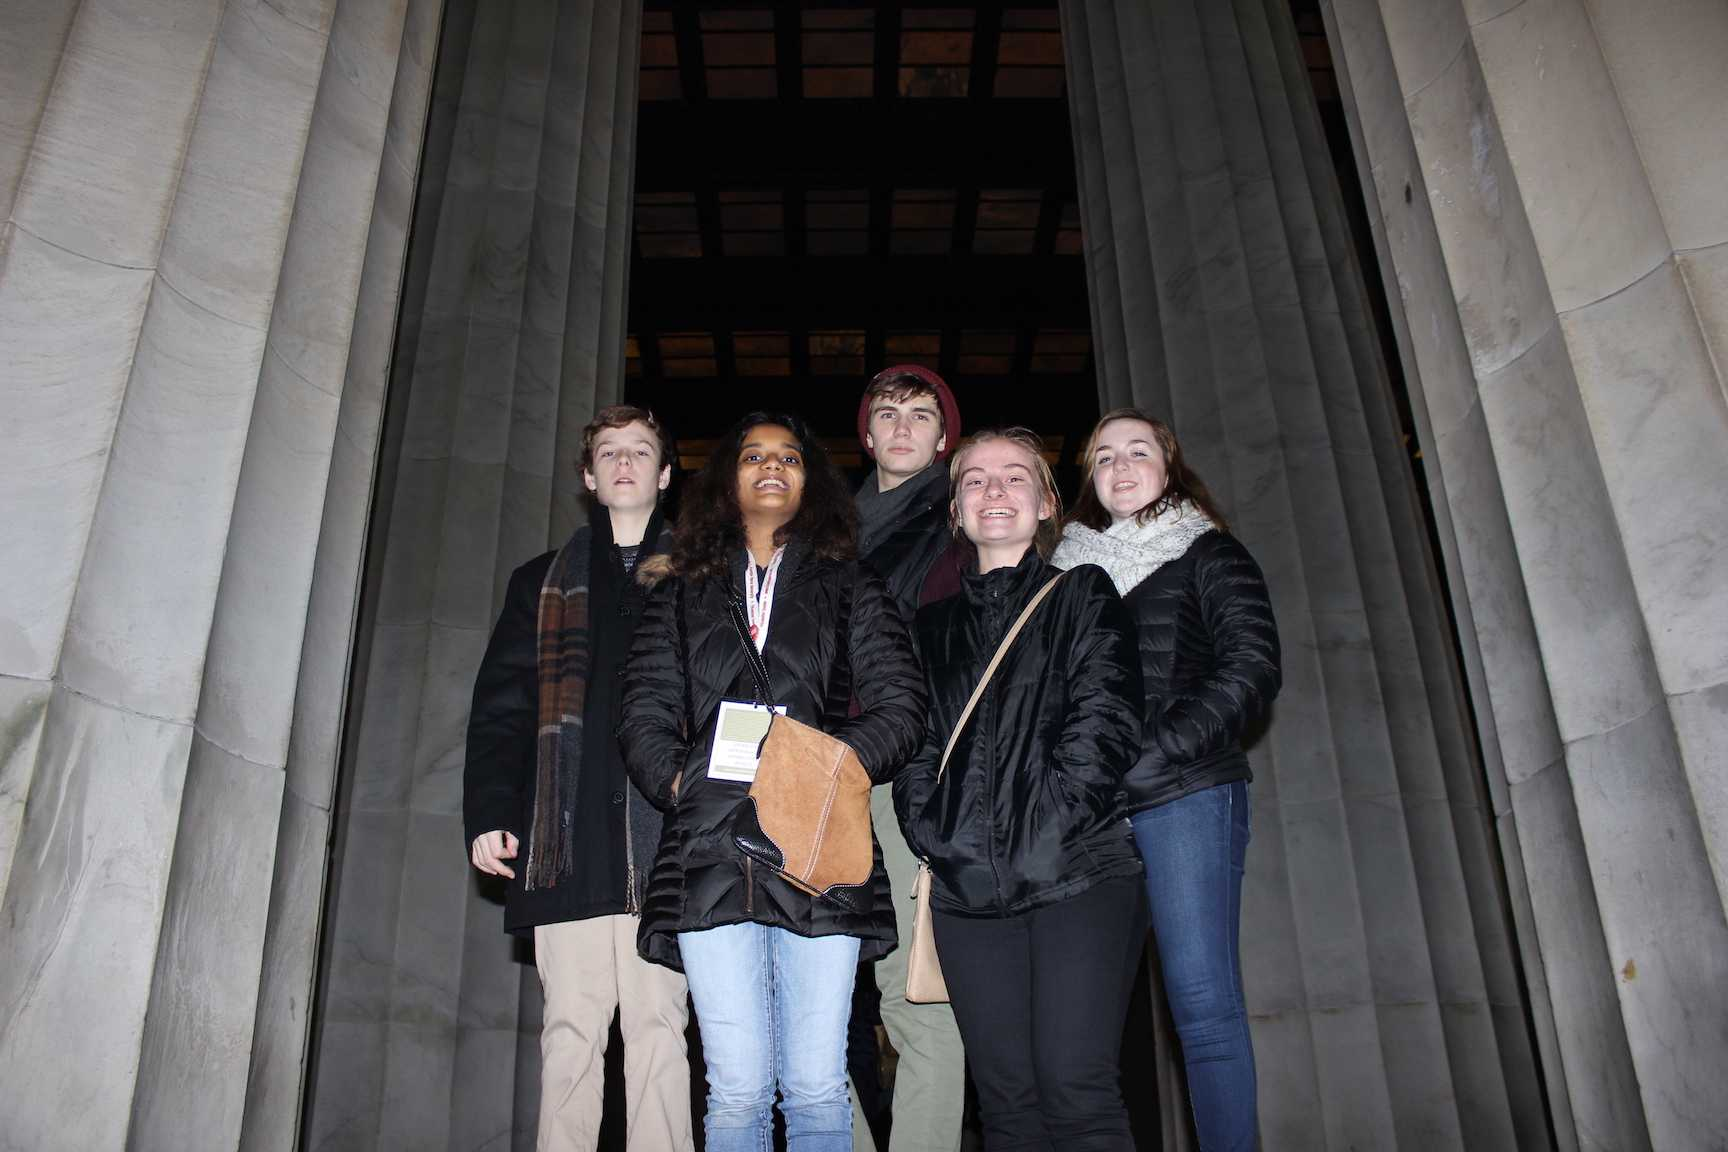 Cheesin%27+%0ALeft+to+Right%3A+Seth+Facey%2C+Meghana+Reddy%2C+Jason+Frank+%28ConVal%29%2C+Sophie+Nikolenko%2C+Anna+Waldron